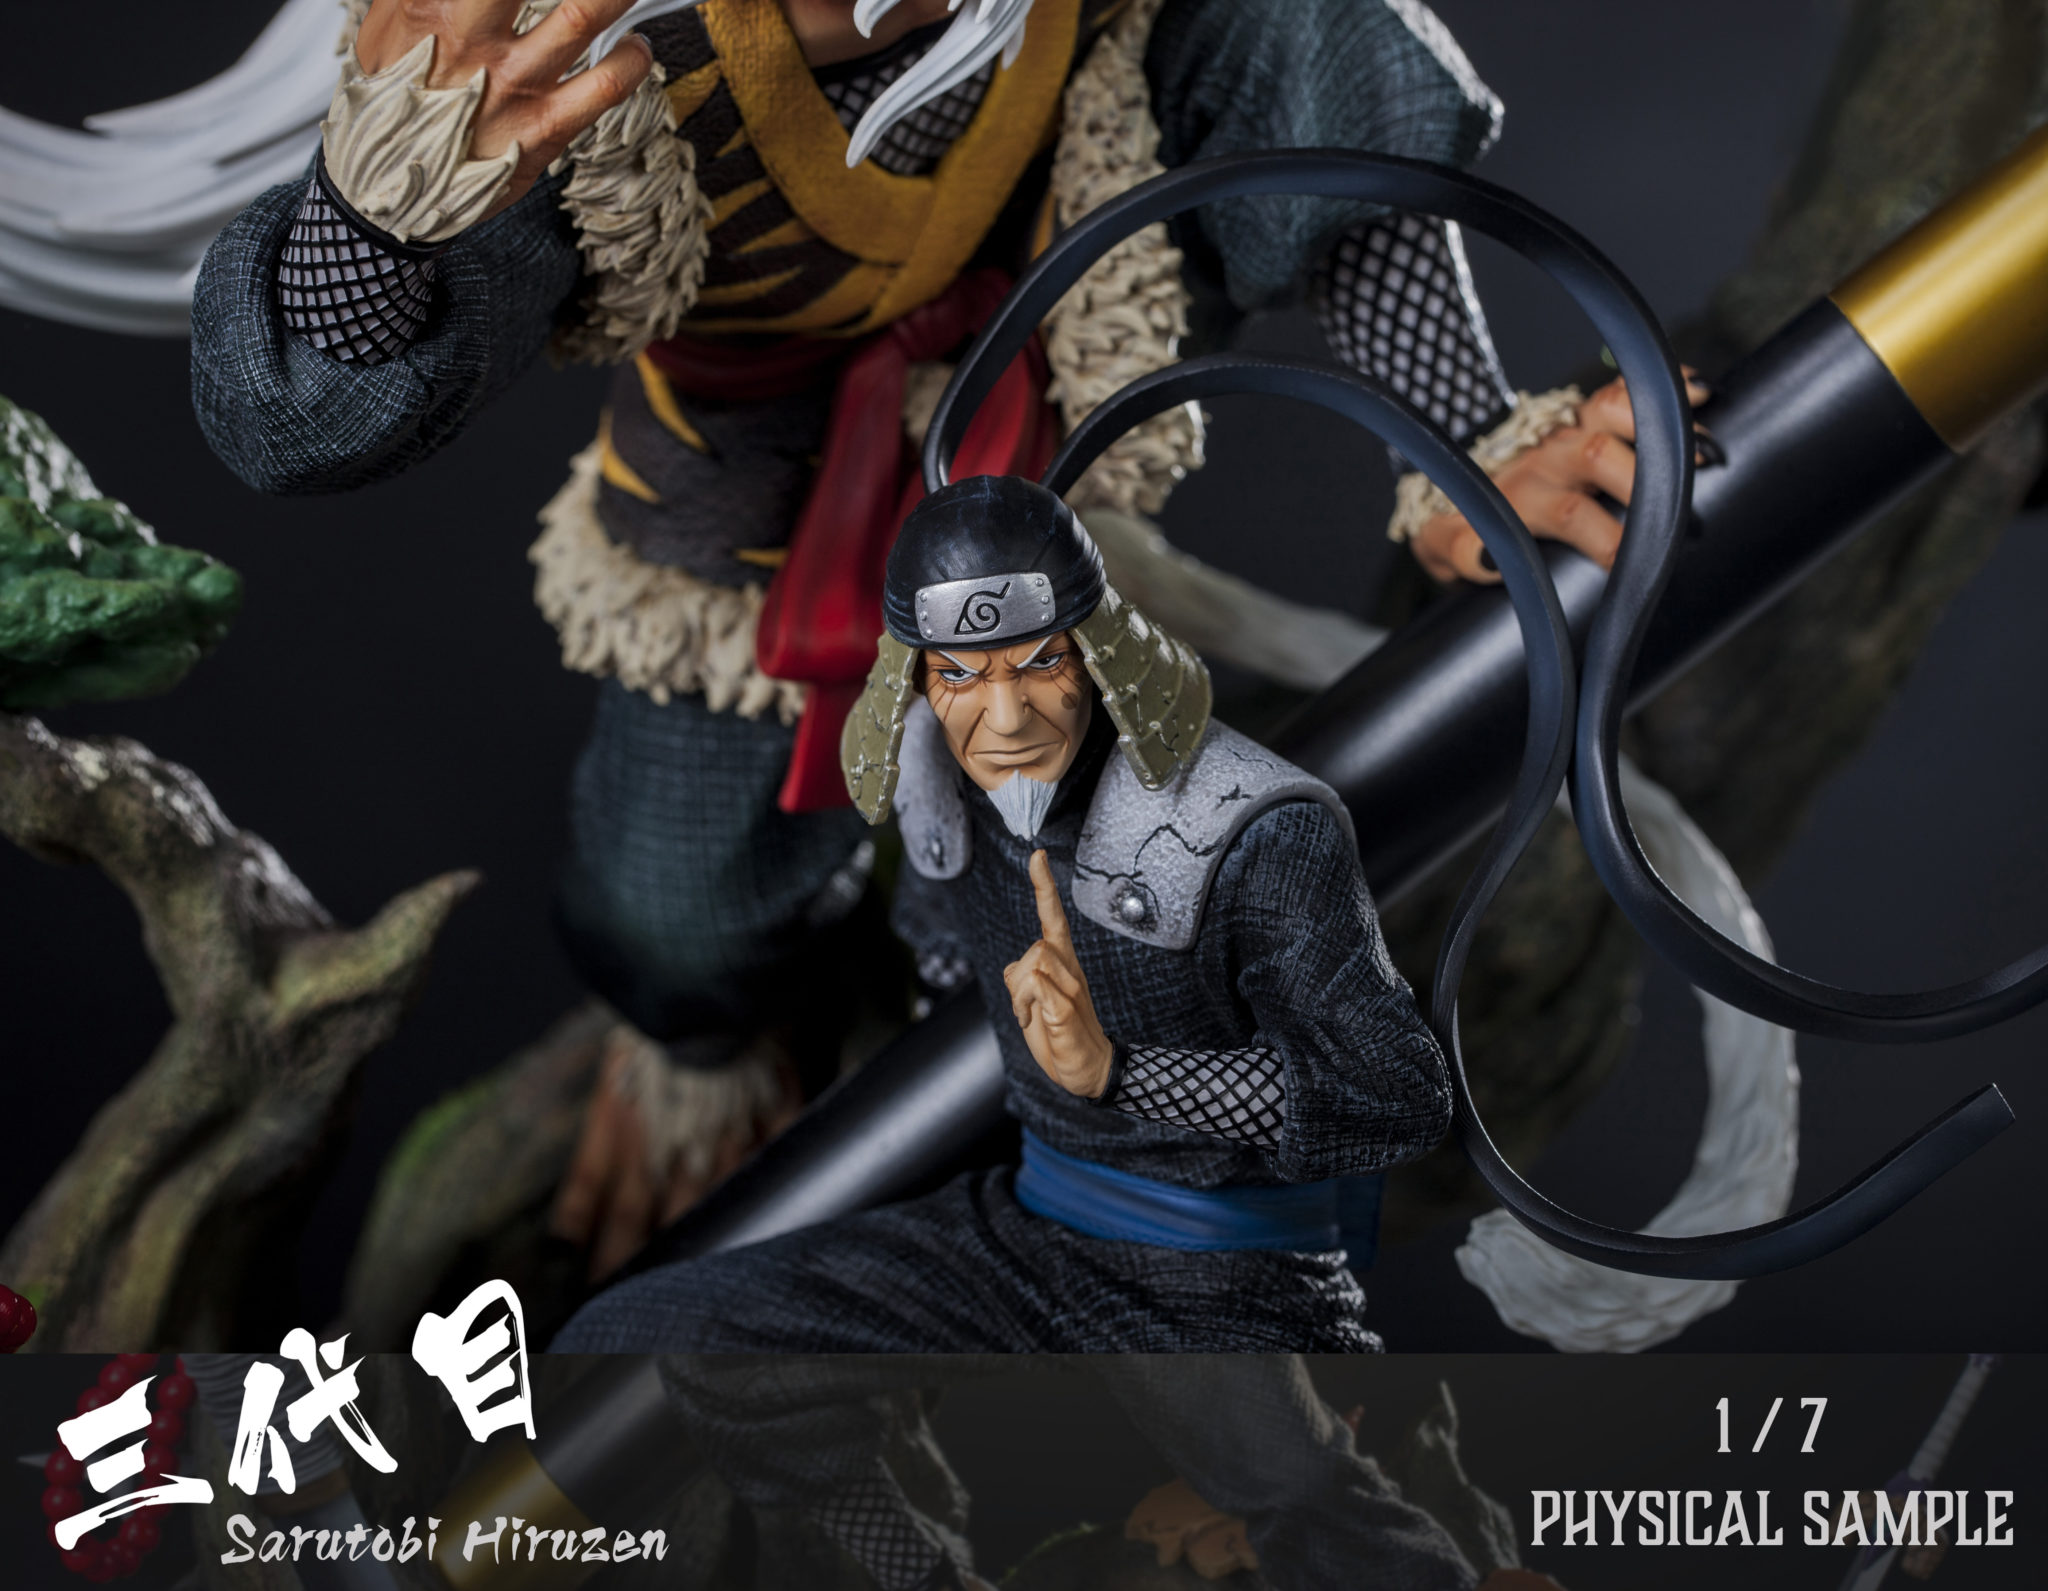 Clouds Studio Hiruzen Sarutobi 1/7 Scale Statue Closeup